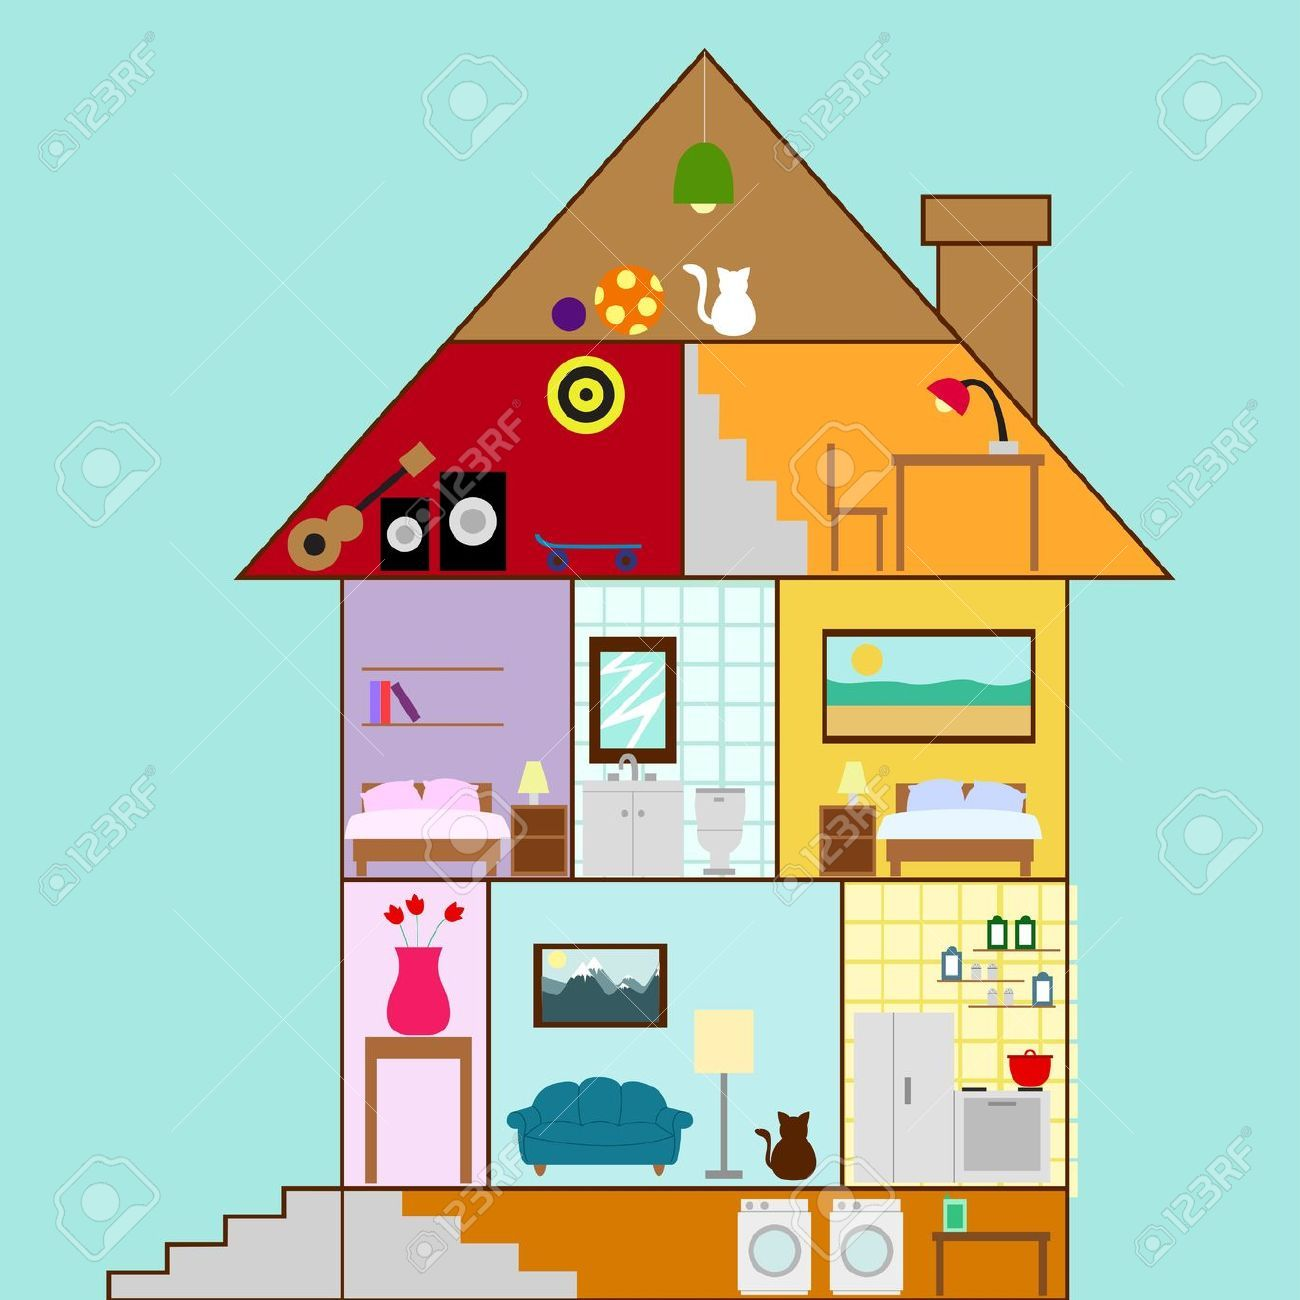 House cross section clipart basement house interior in a for Interior house design clipart